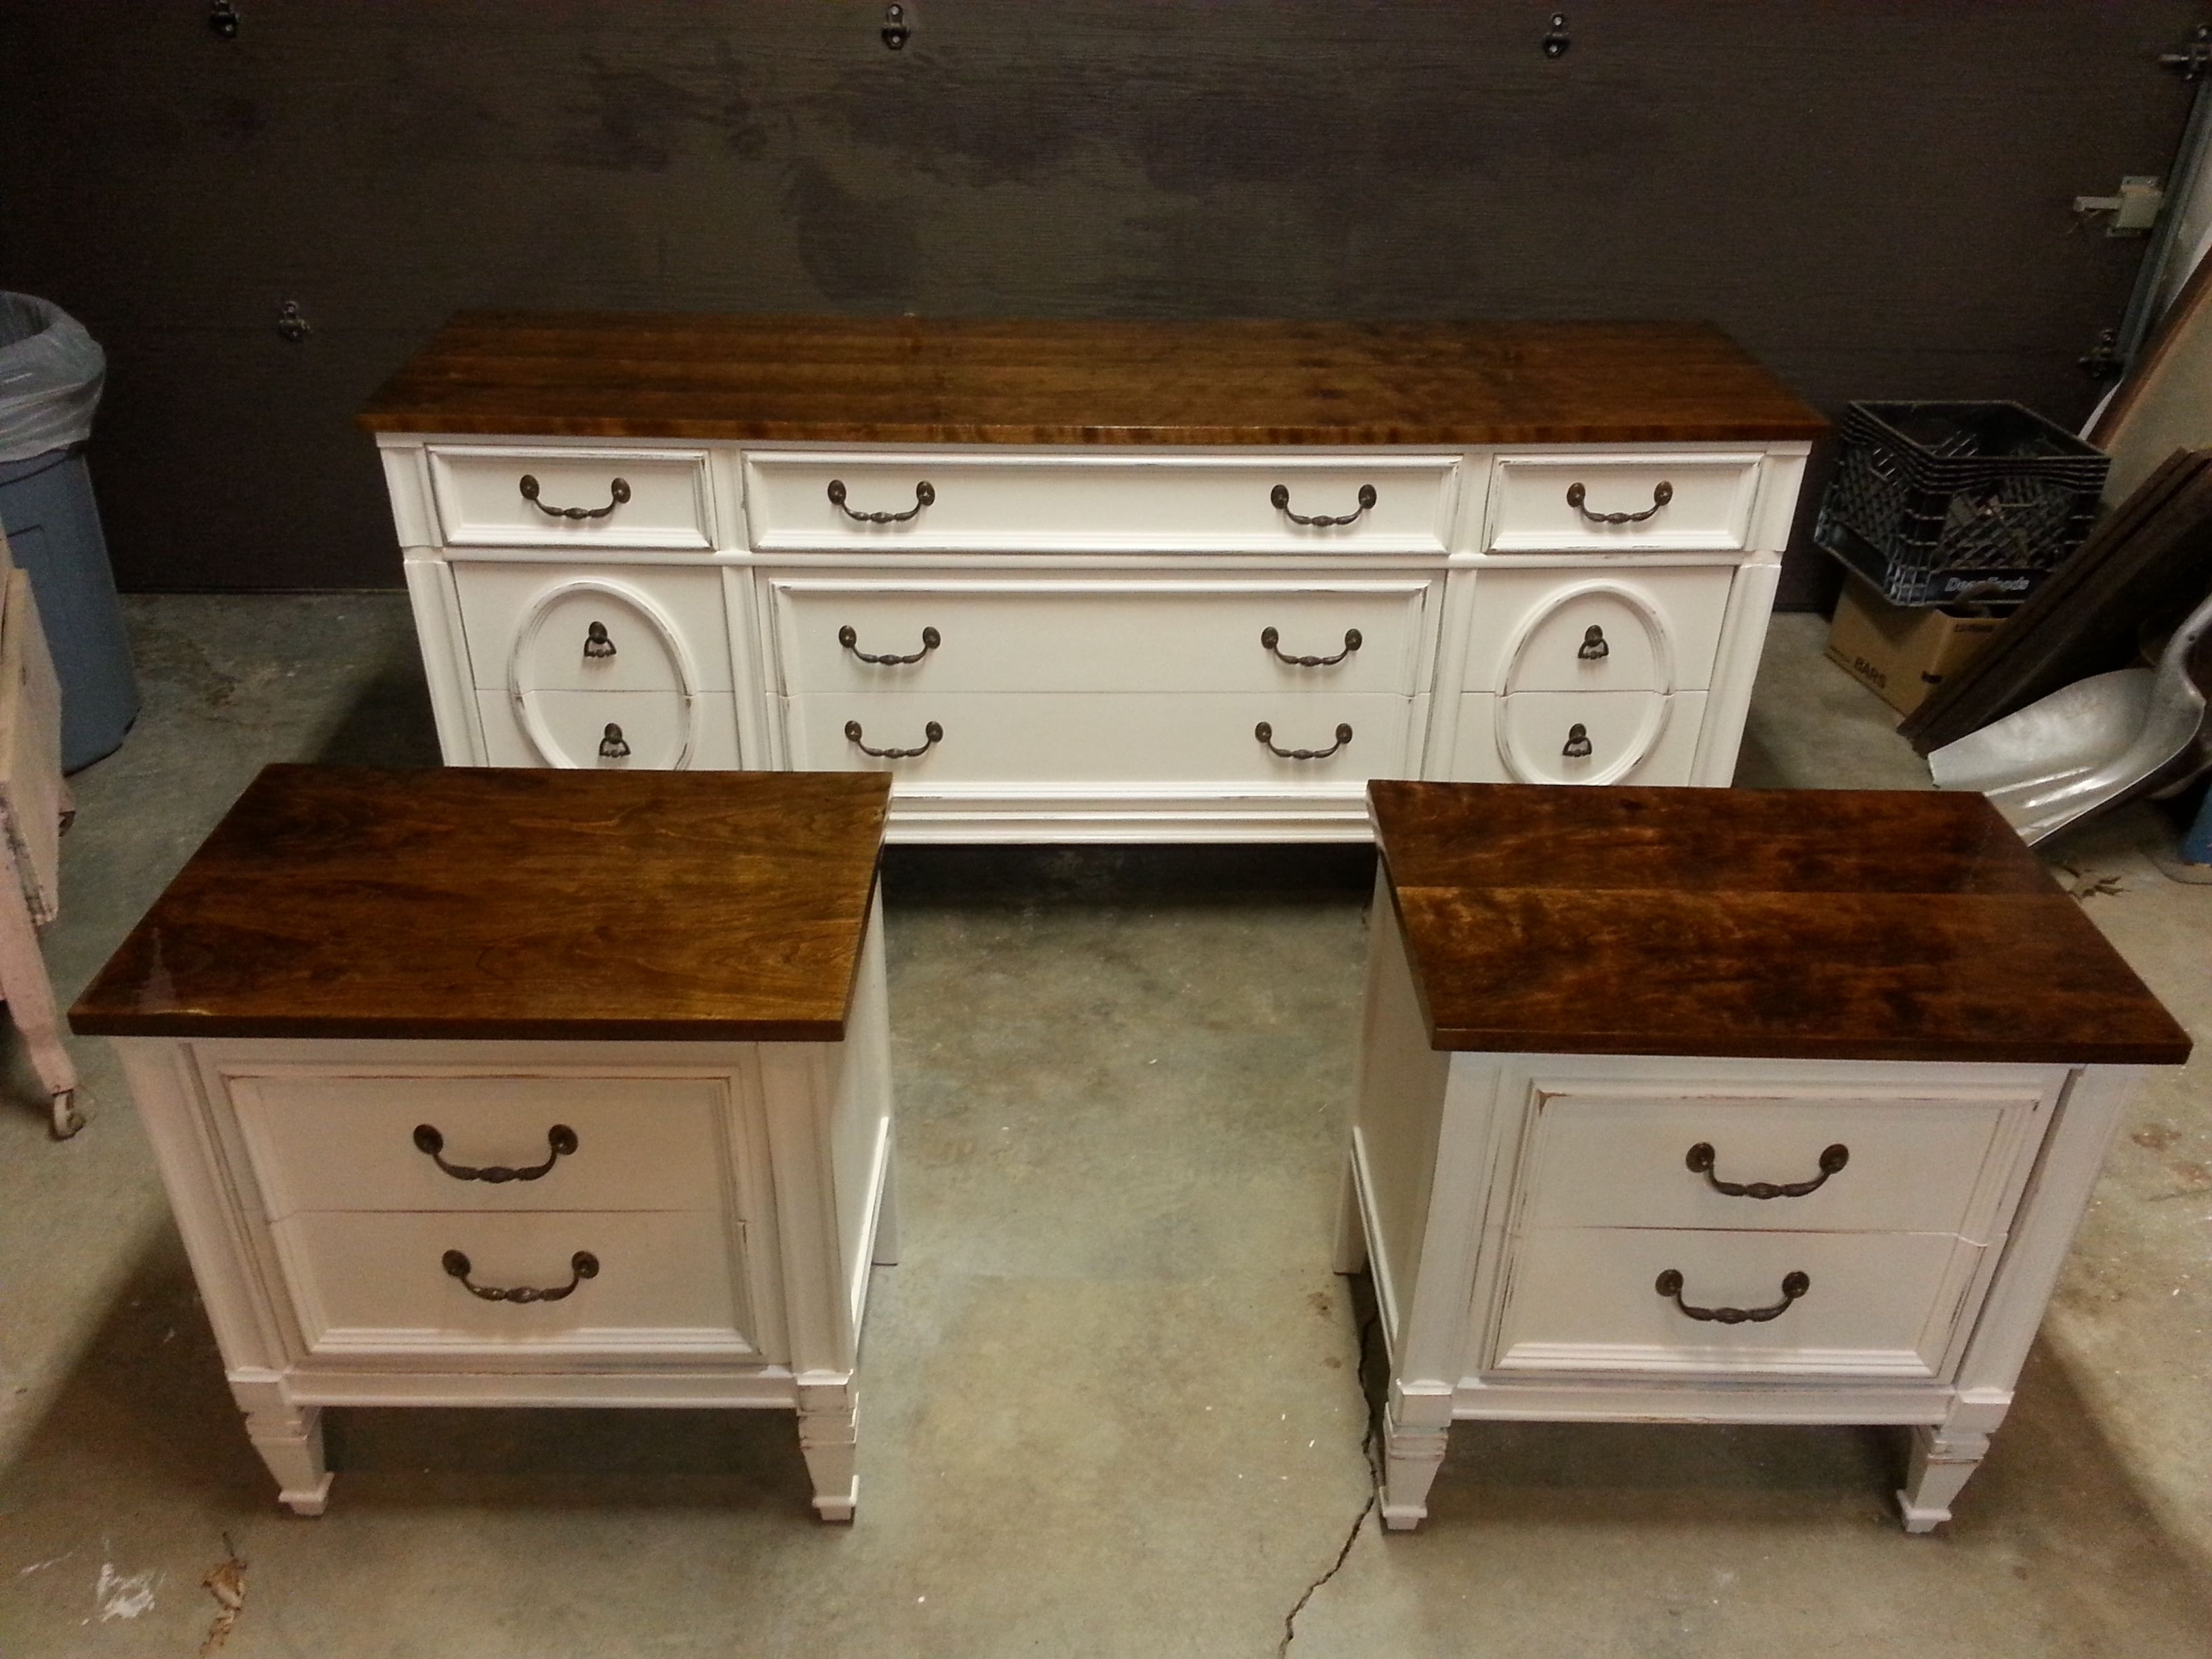 Vintage bassett dresser and night stand set painted antique white and lightly distressed then a dark maple stain on top furniture redo